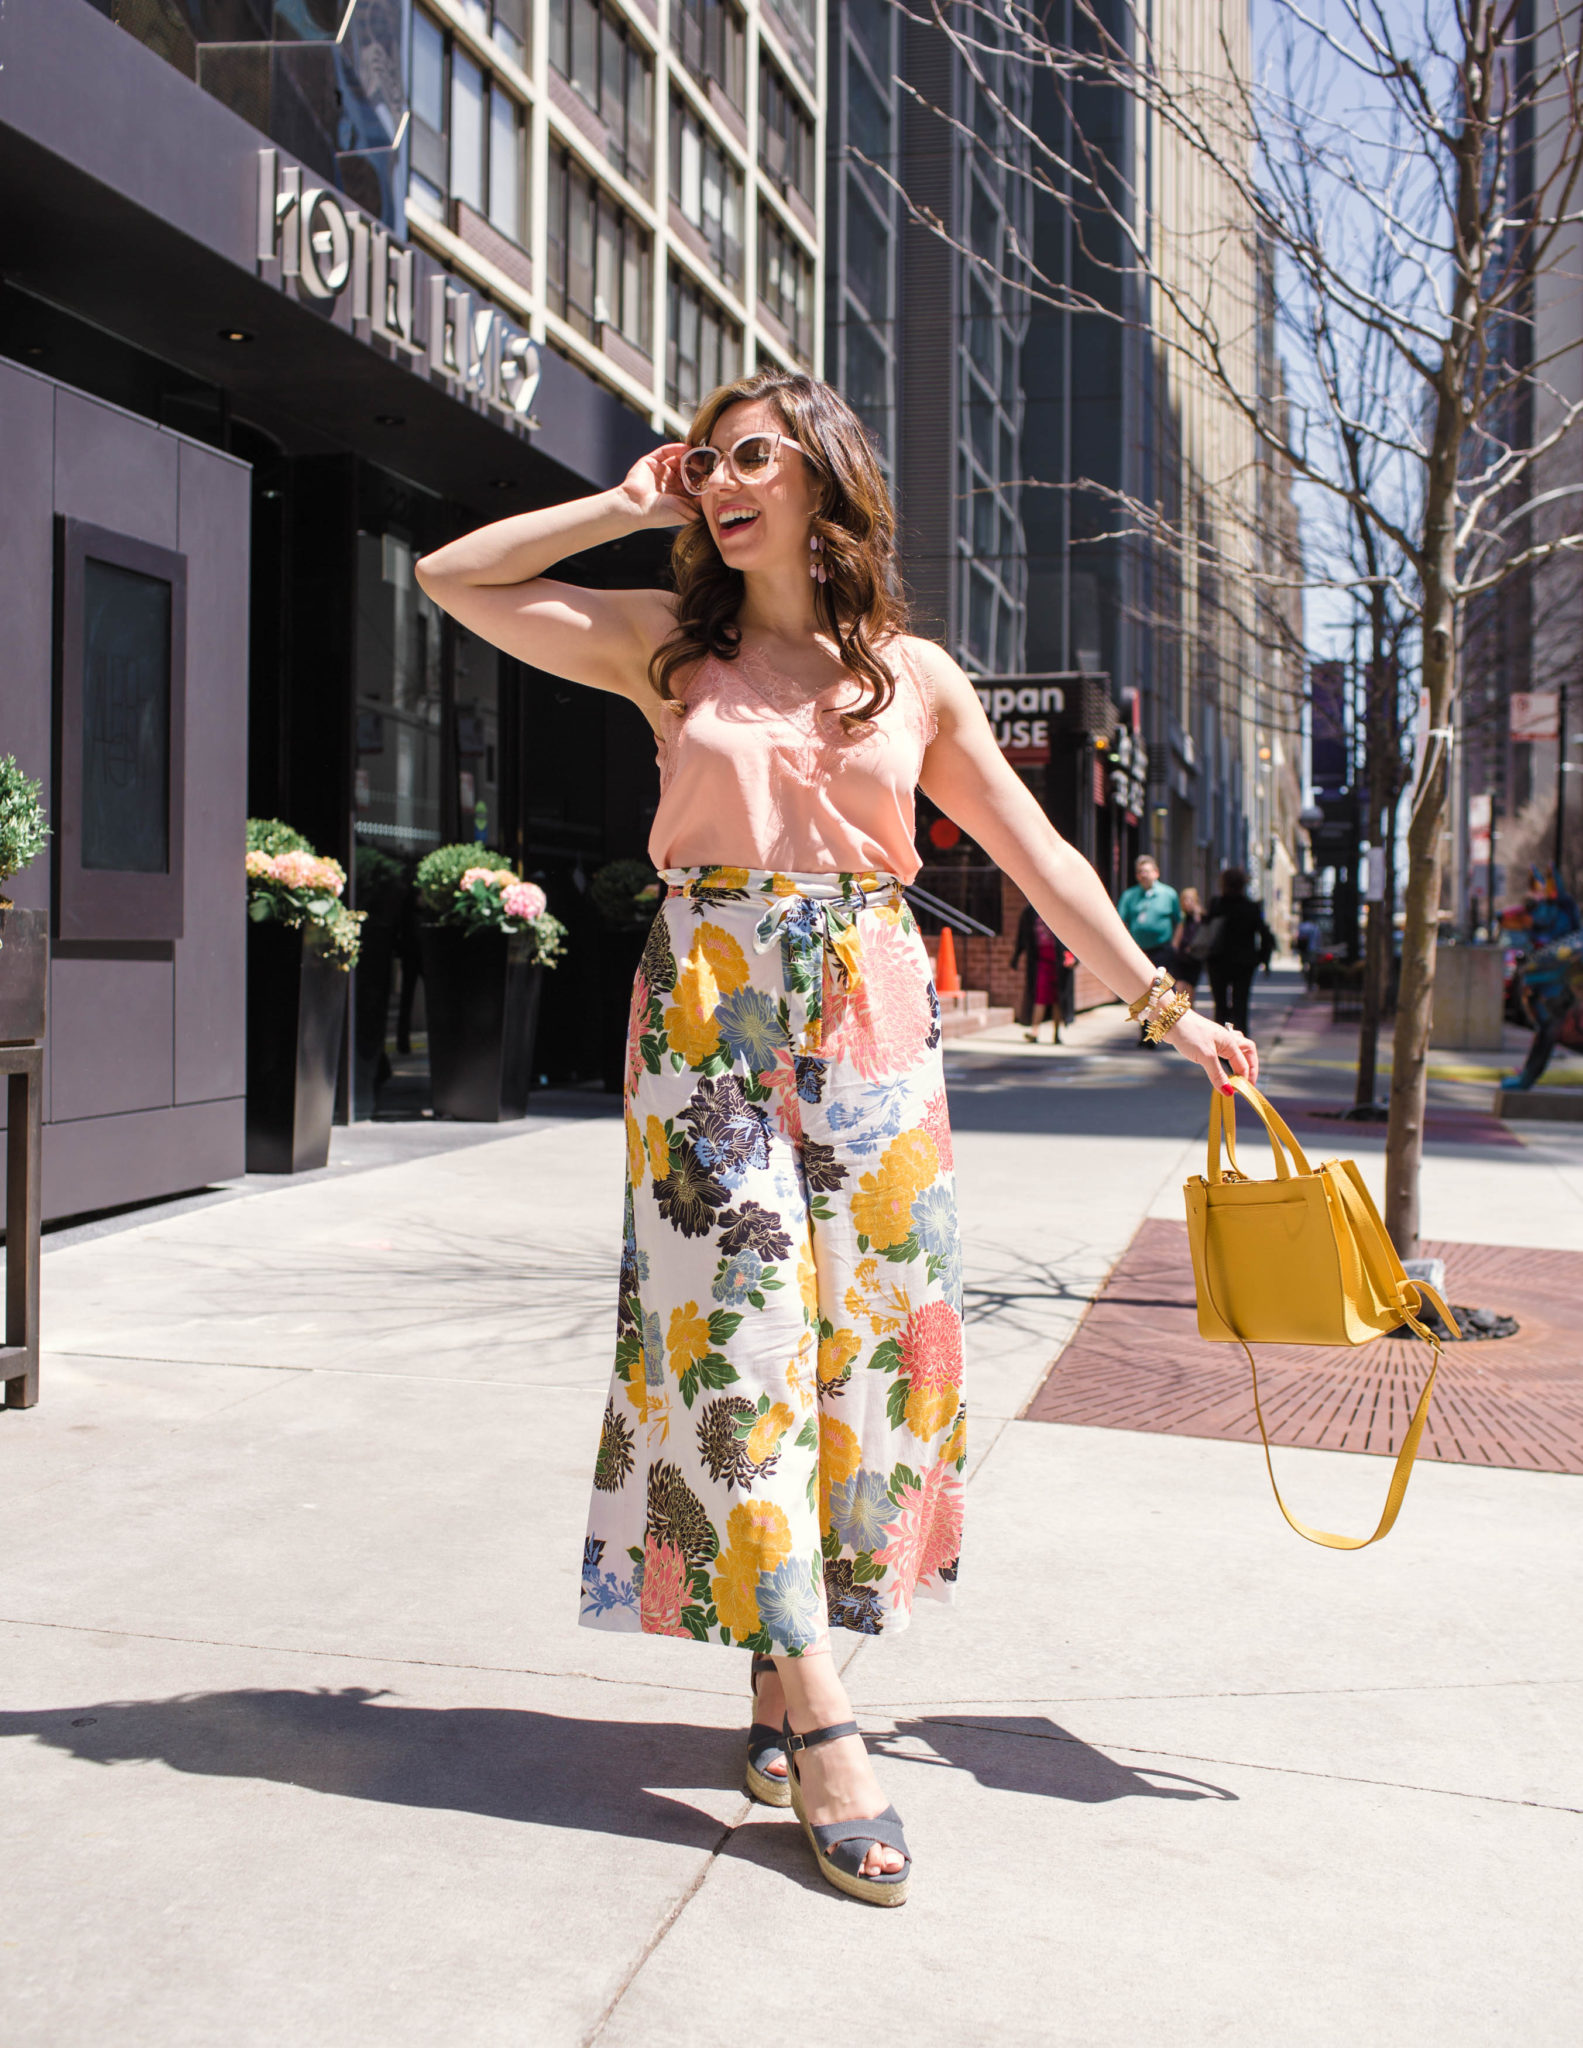 Fancy Culottes Pants to Strut Your Stuff In & On Mondays We Link Up (#64) featured by popular Chicago fashion blogger, Glass of Glam